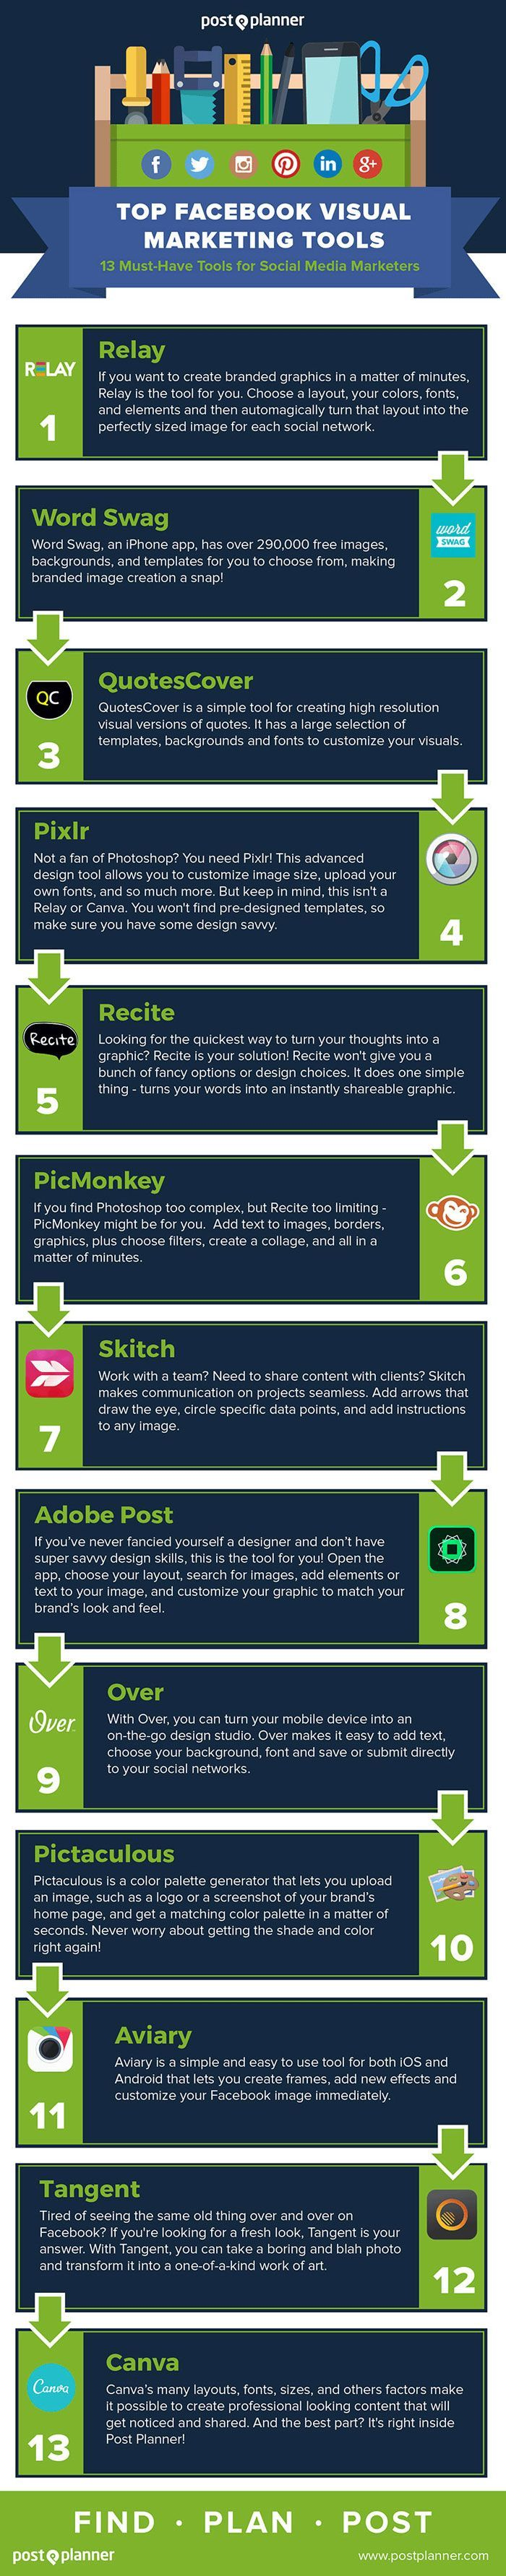 13 Must-Have Marketing Tools for Engaging Facebook Images [Infographic] - @postplanner